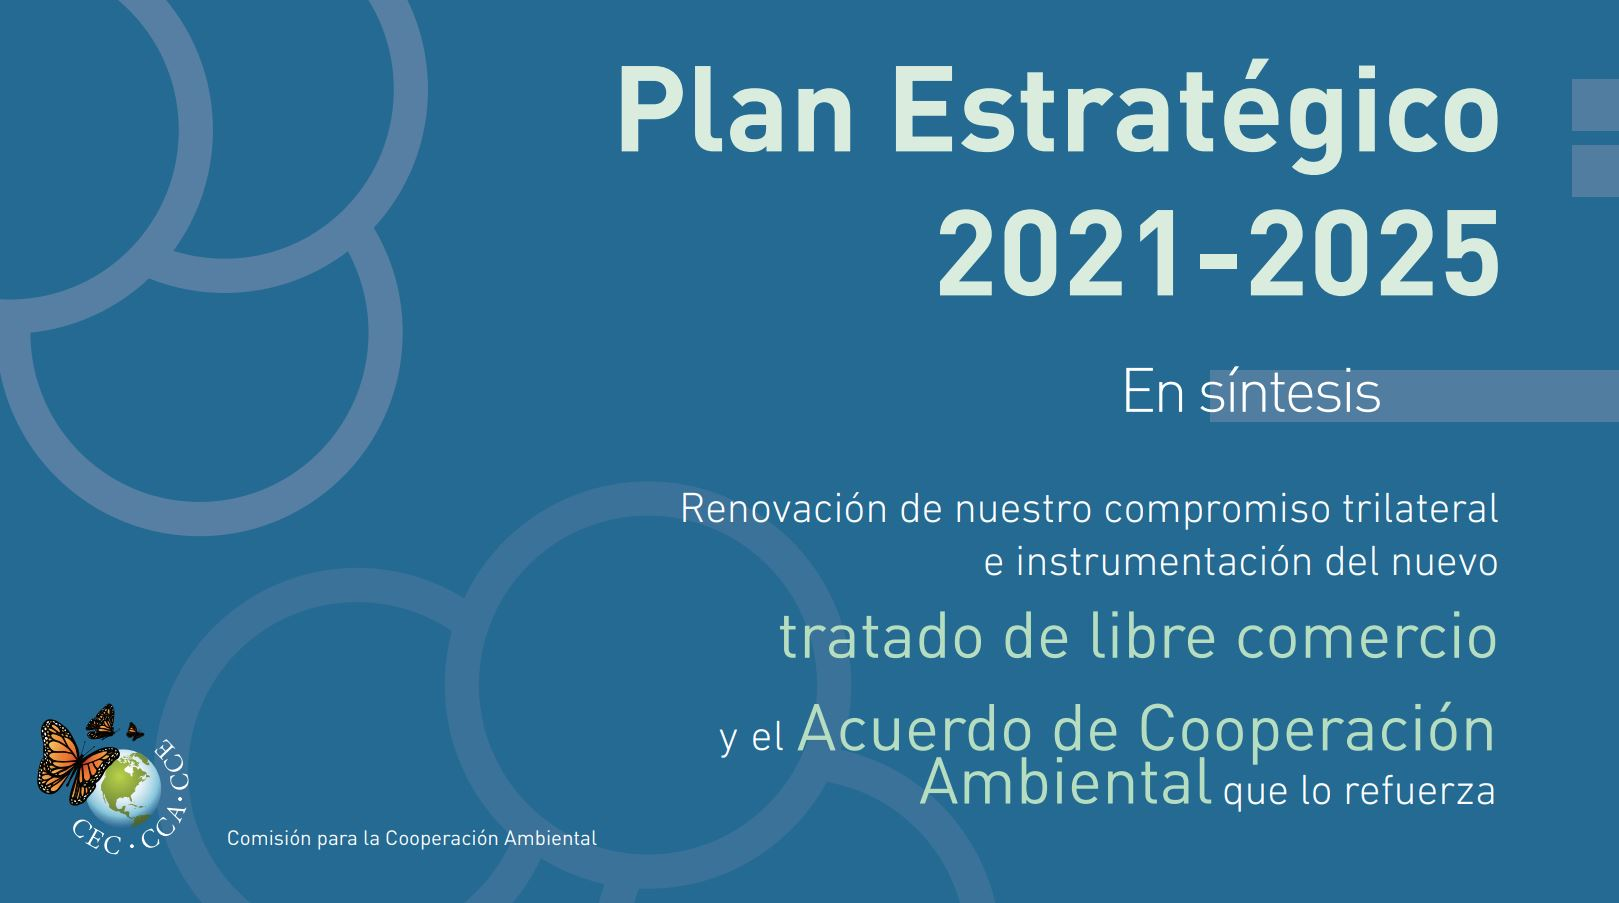 Banner for the CEC's Strategic Plan for 2021-2025